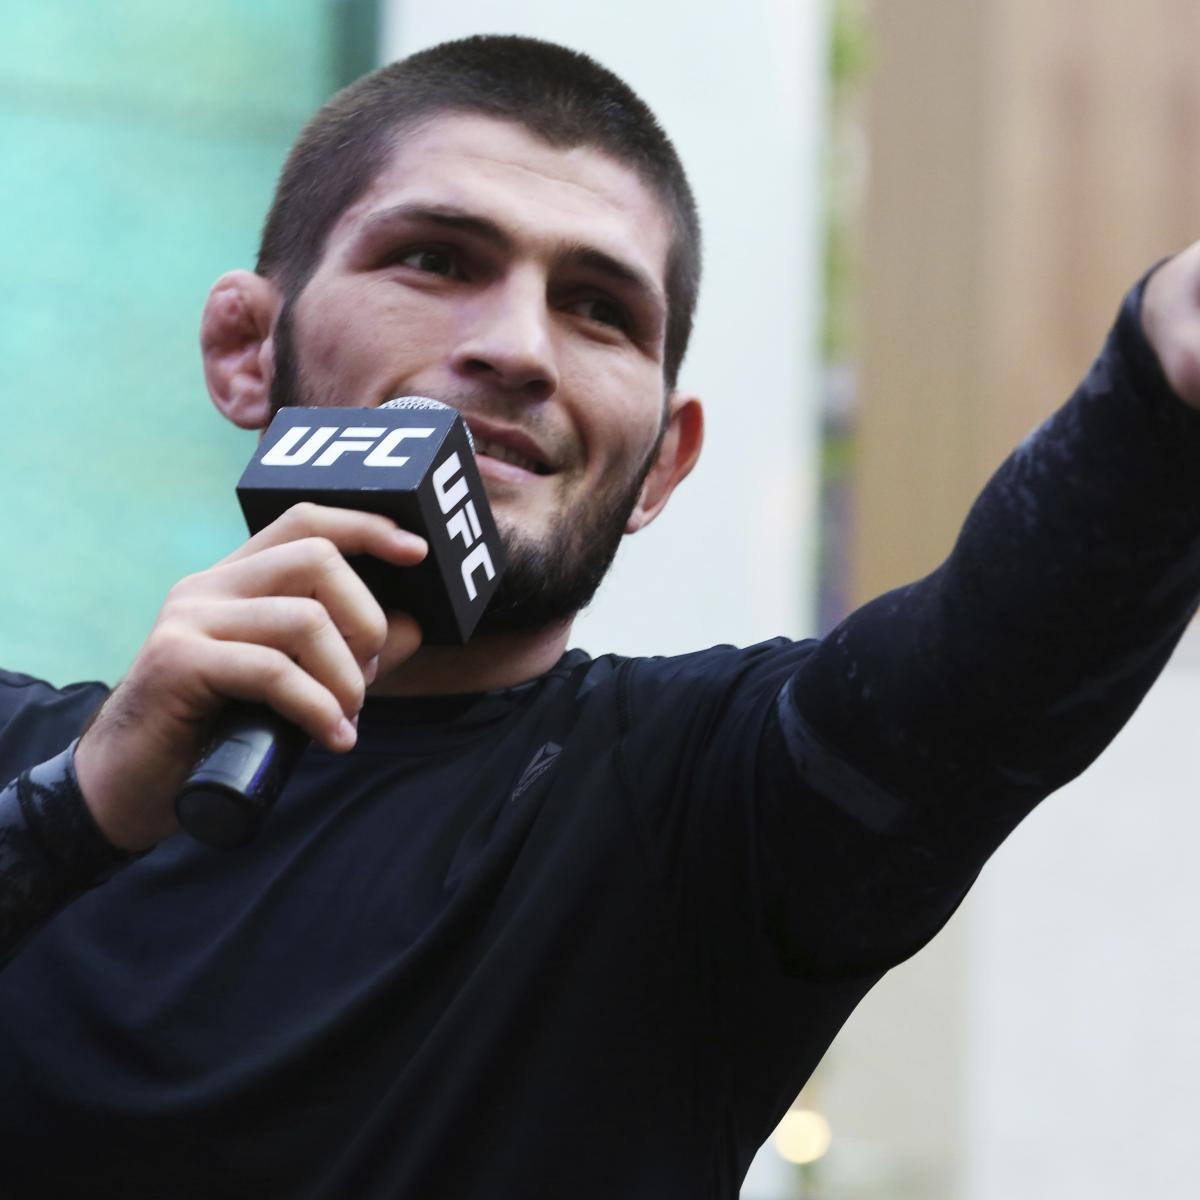 UFC 254 Fight Card: PPV Schedule, Odds and Predictions for Khabib vs. Gaethje